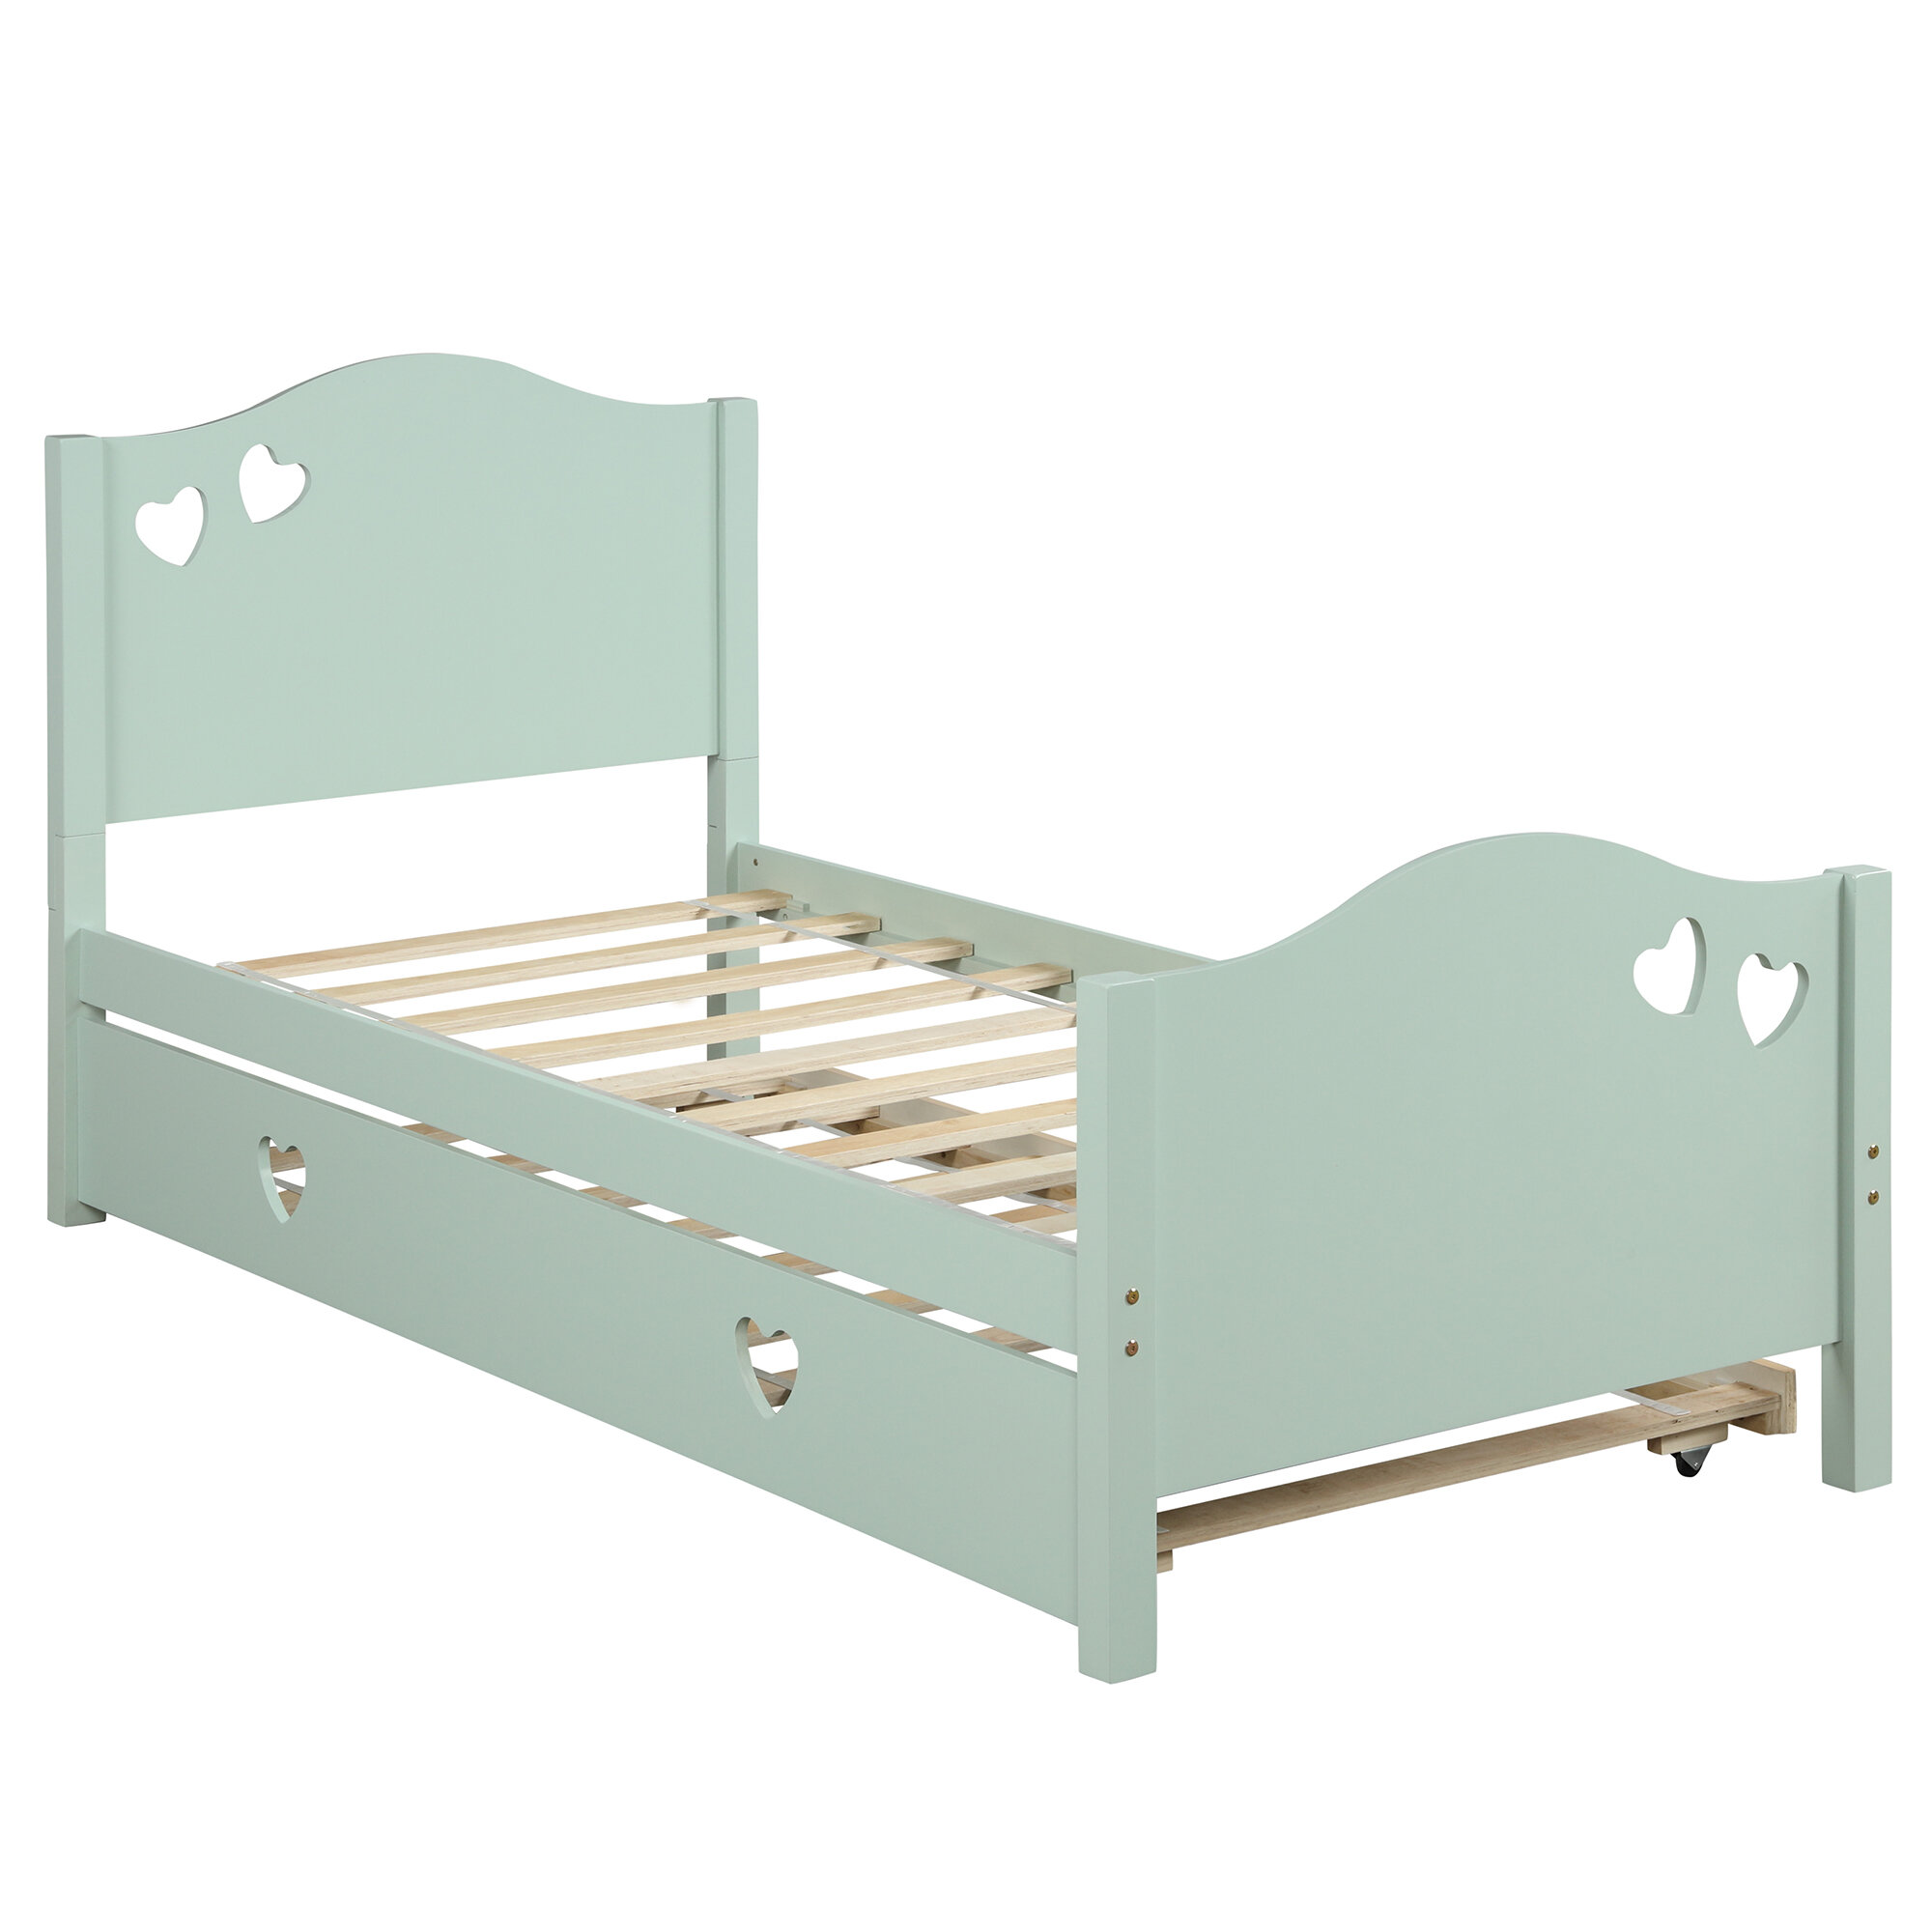 Thack Twin Convertible Toddler Bed